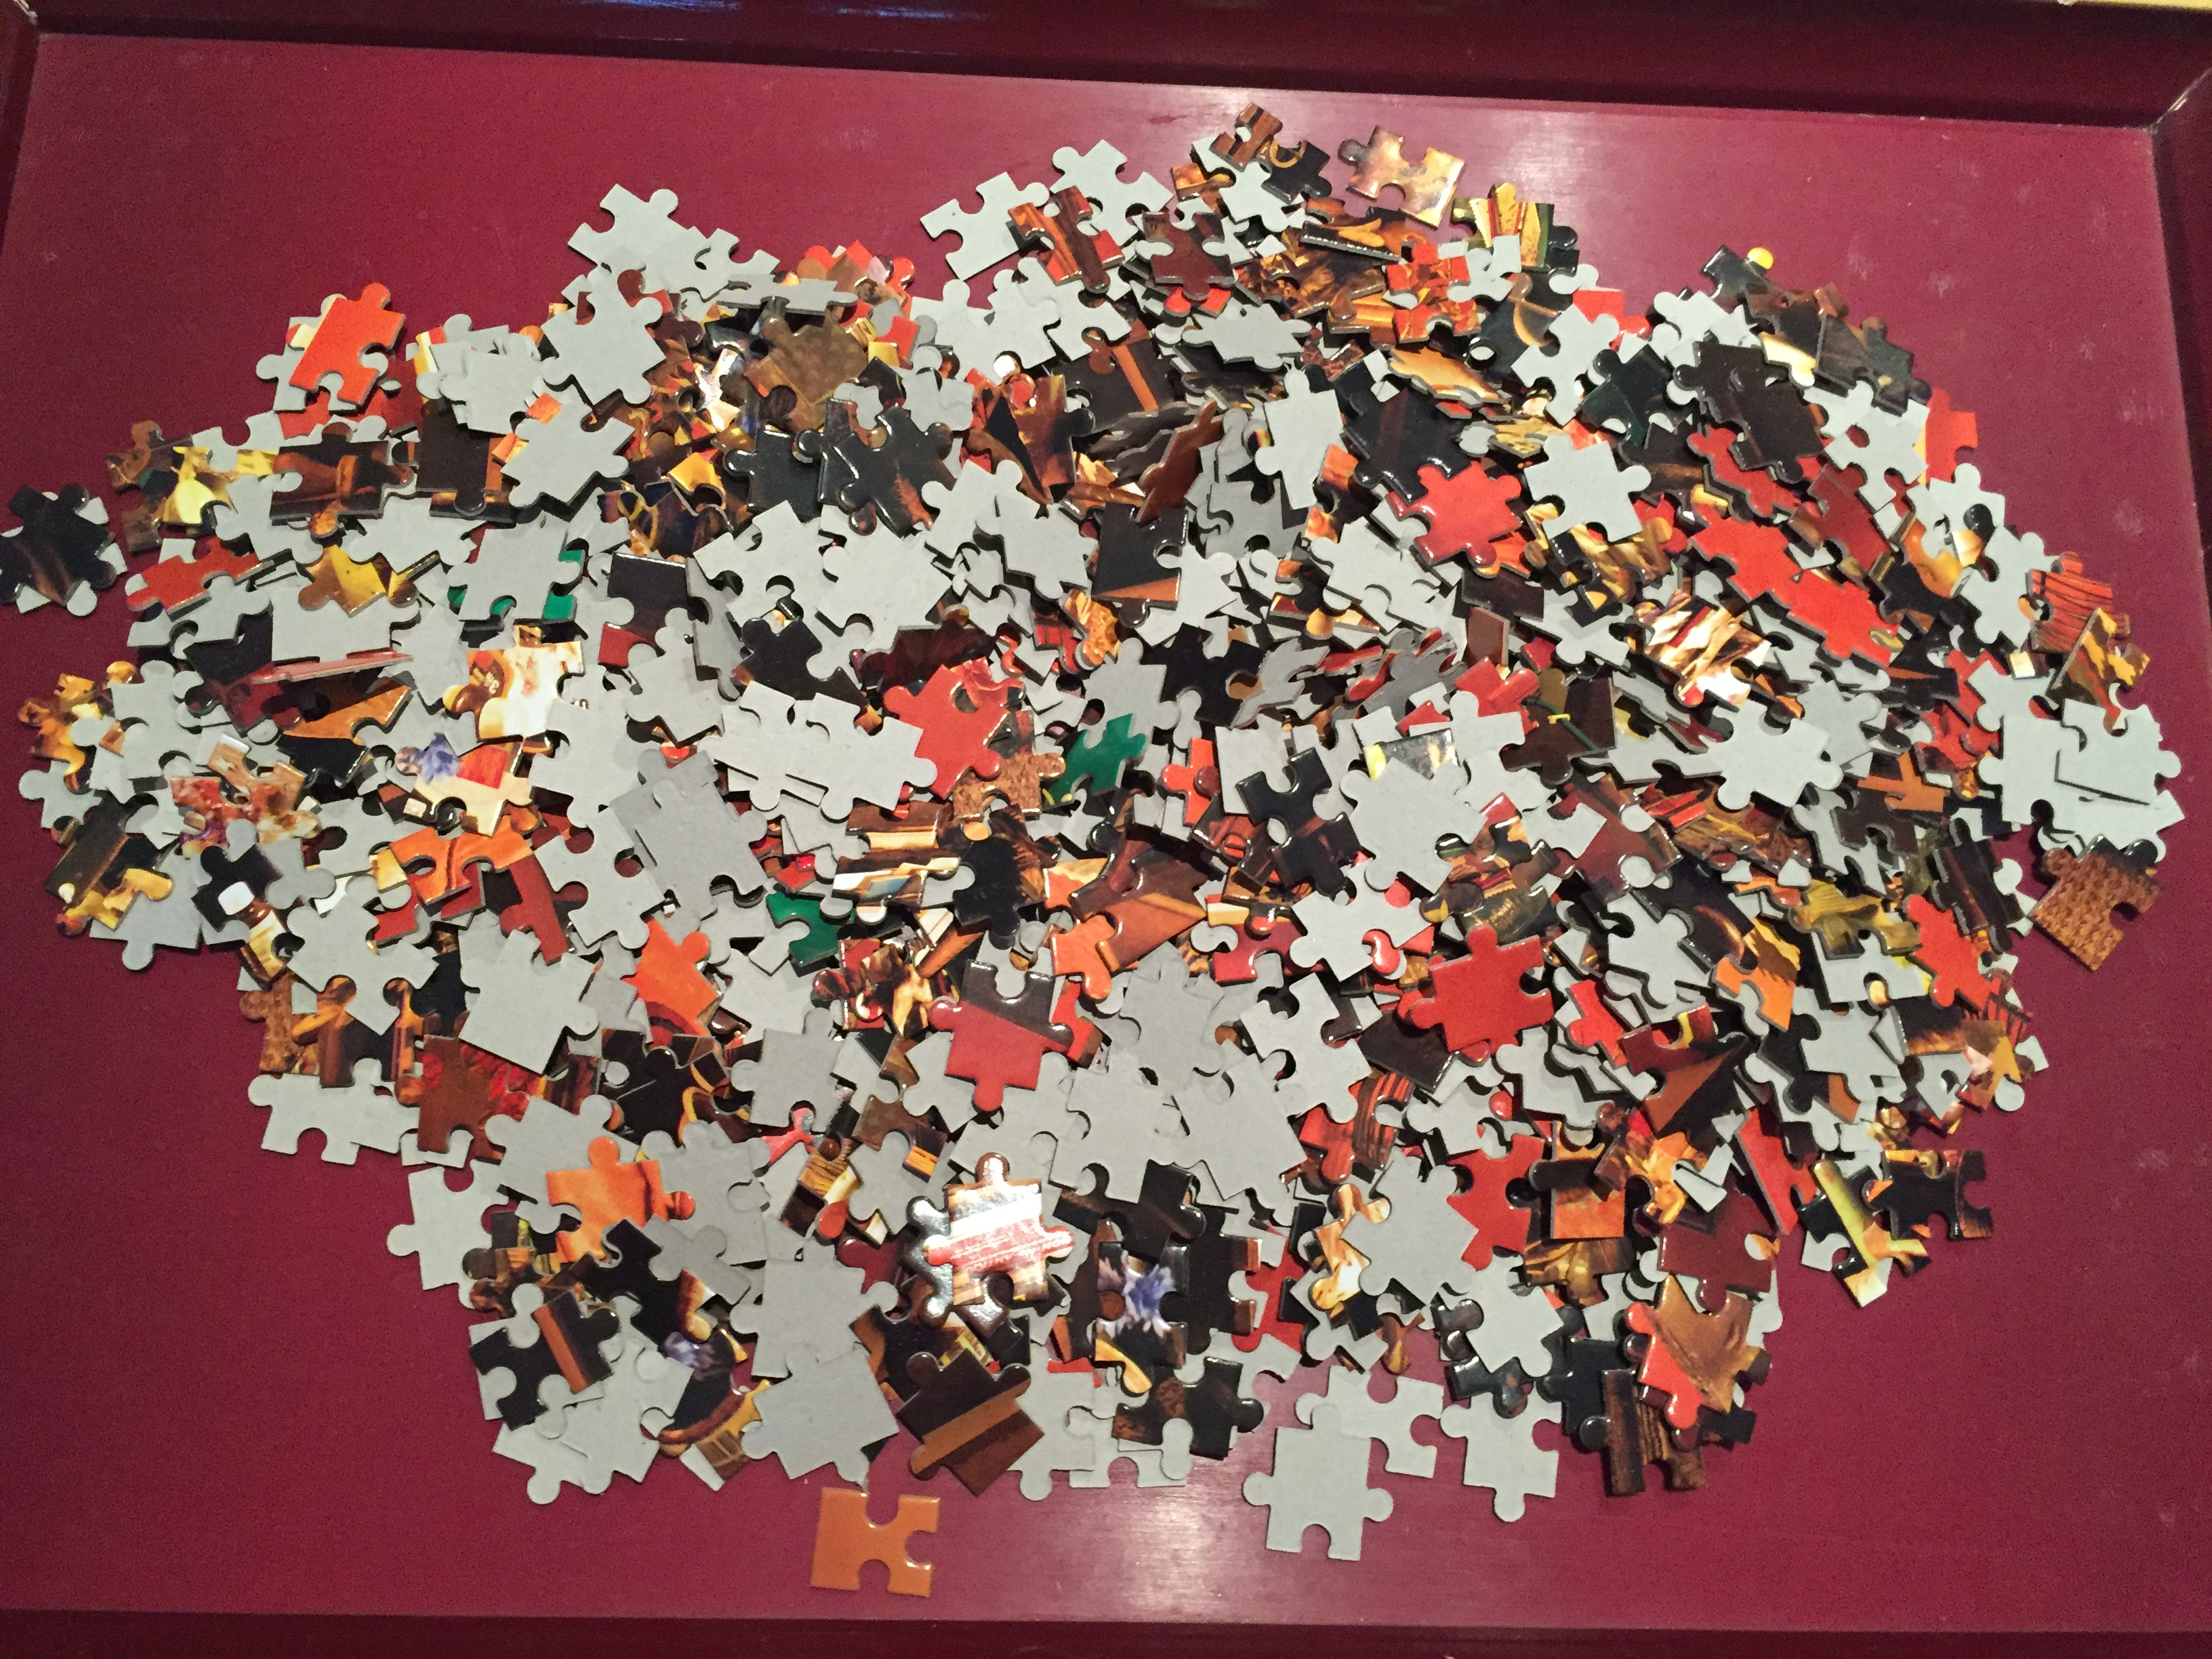 My new puzzle - A work in progress!